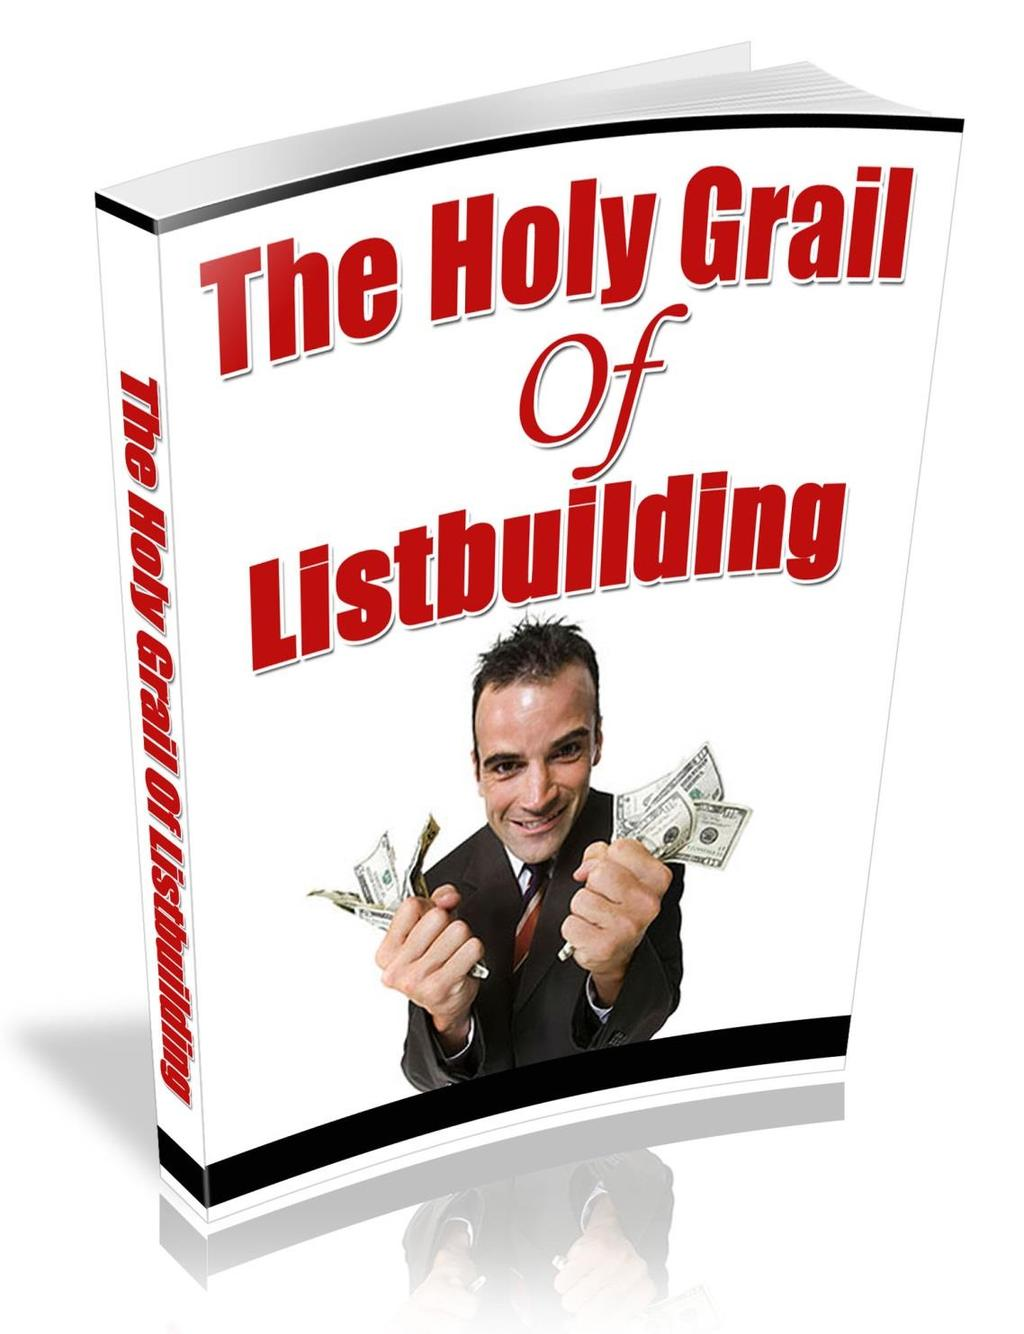 Welcome To The Holy Grail Of Listbuilding The content within this report is for personal use only, you